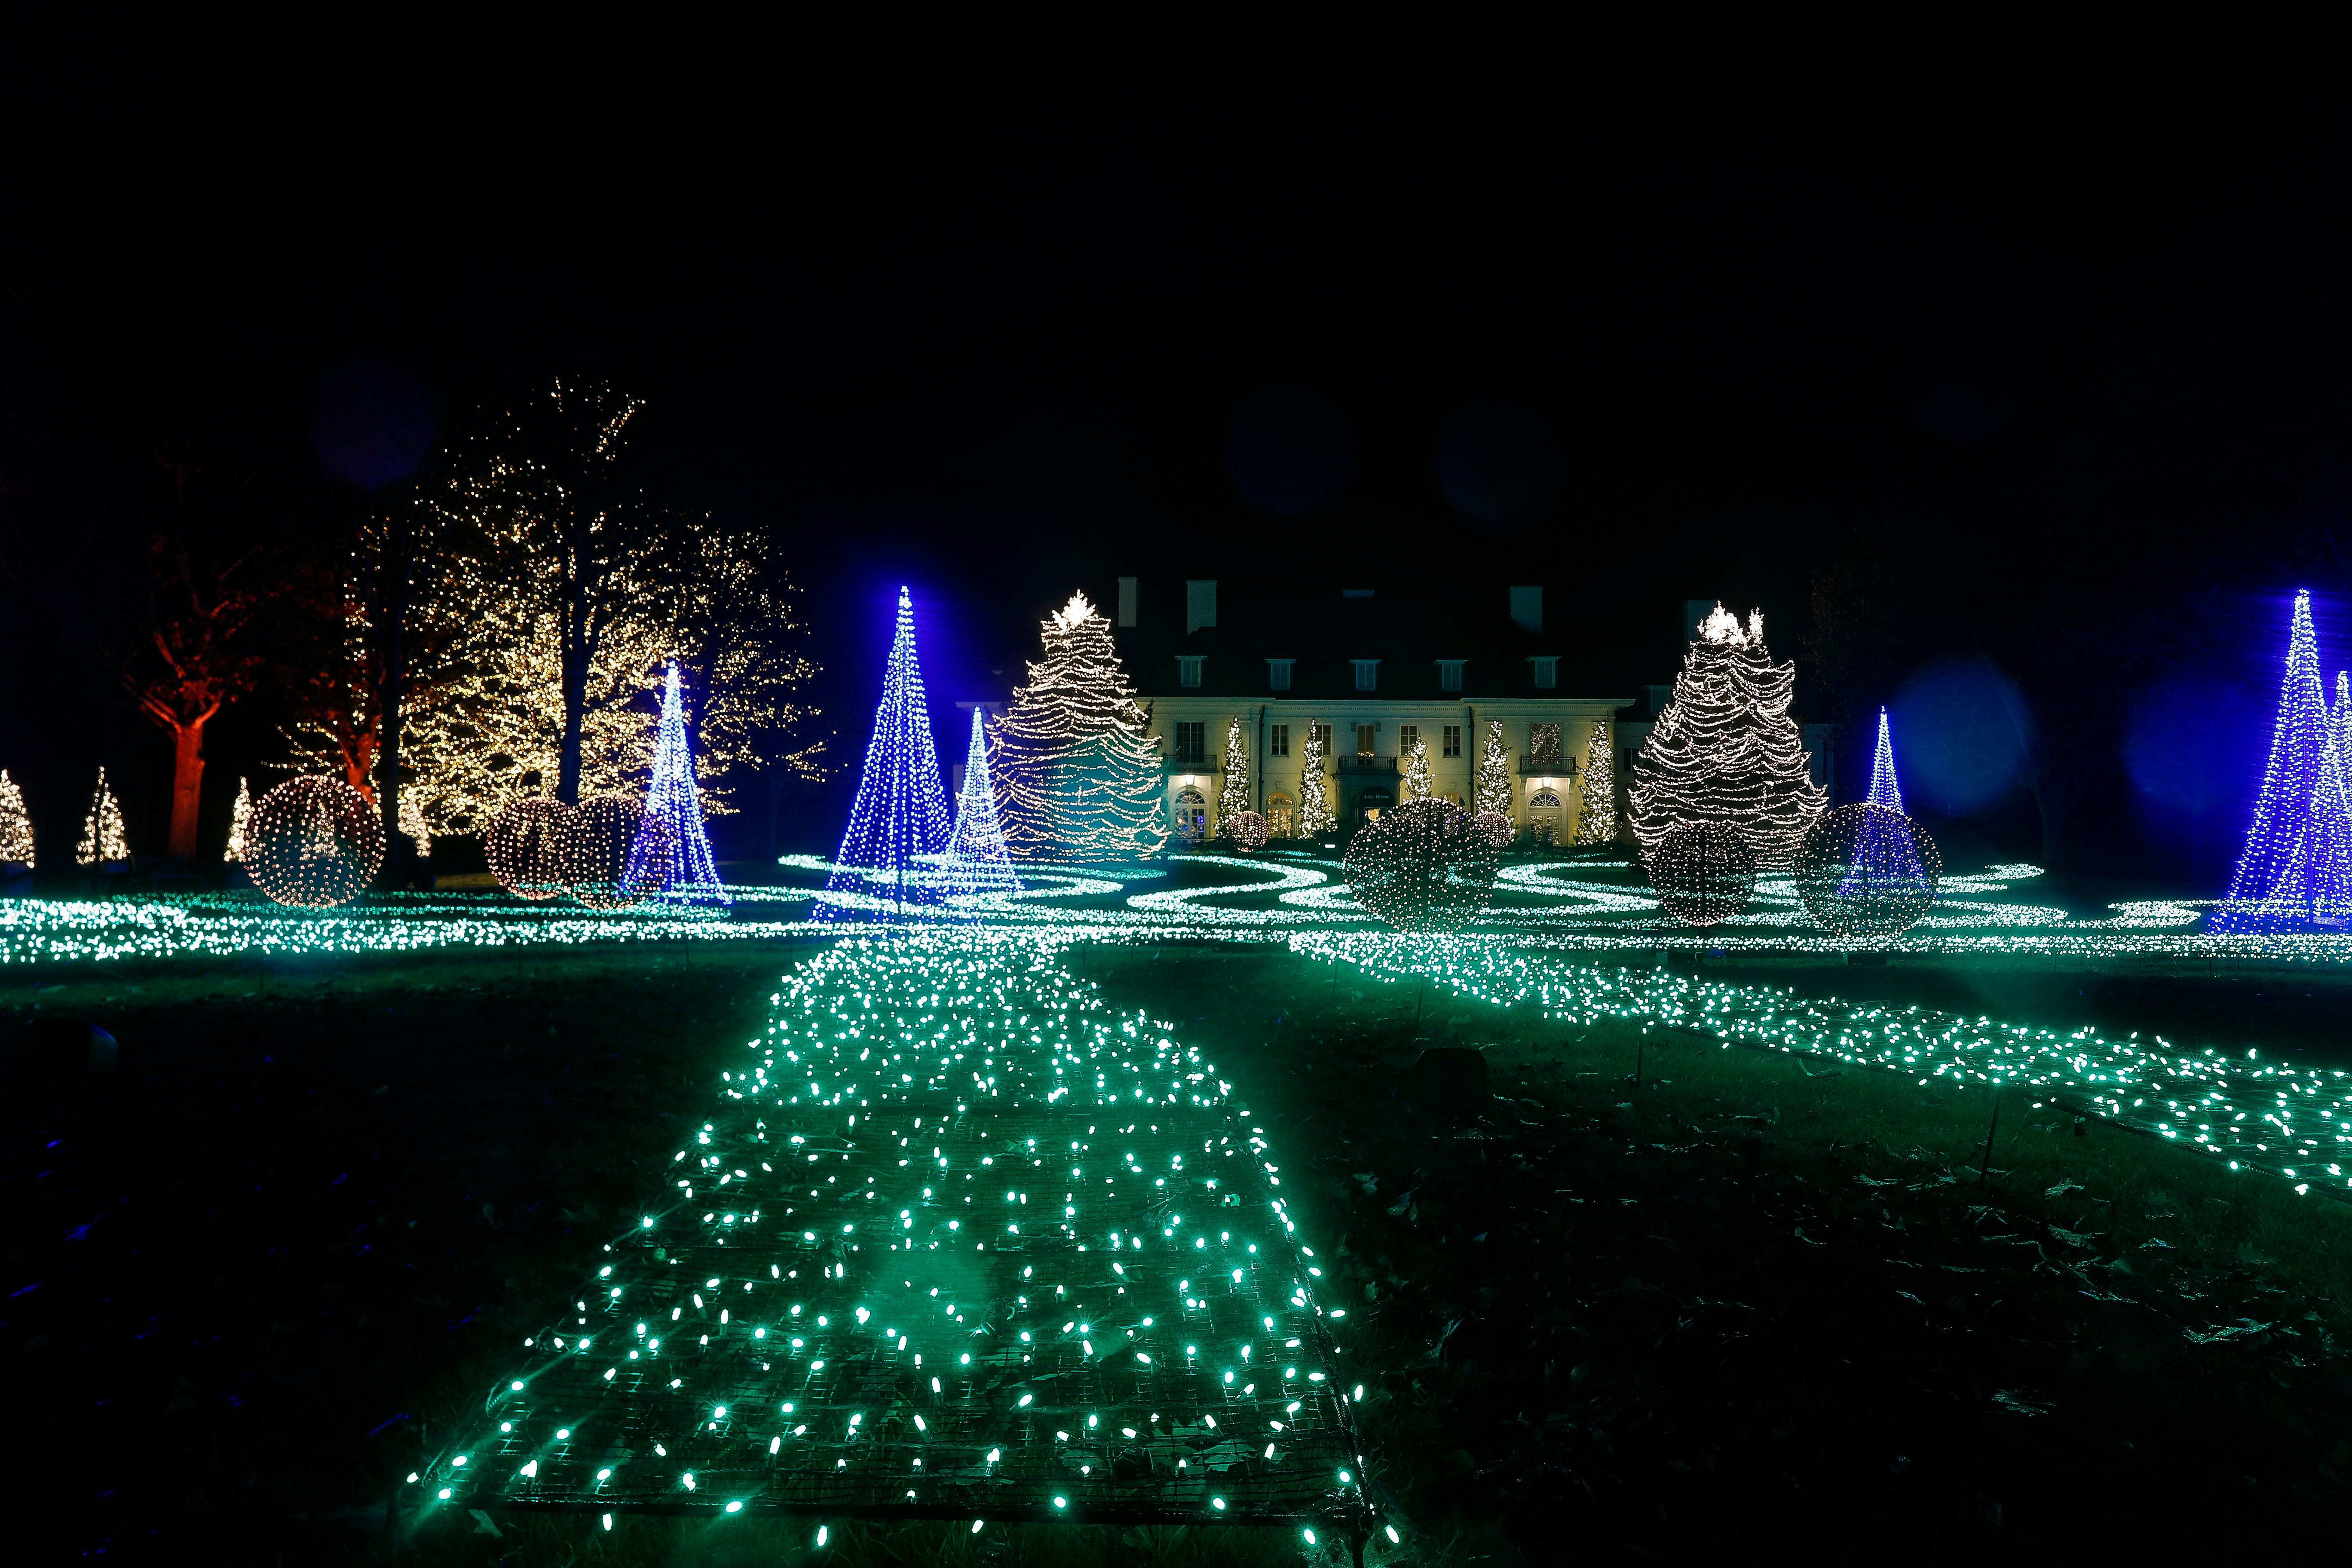 Christmas Lights Indianapolis 2020 Newfields Winterlights 2020: How to get tickets and what to know